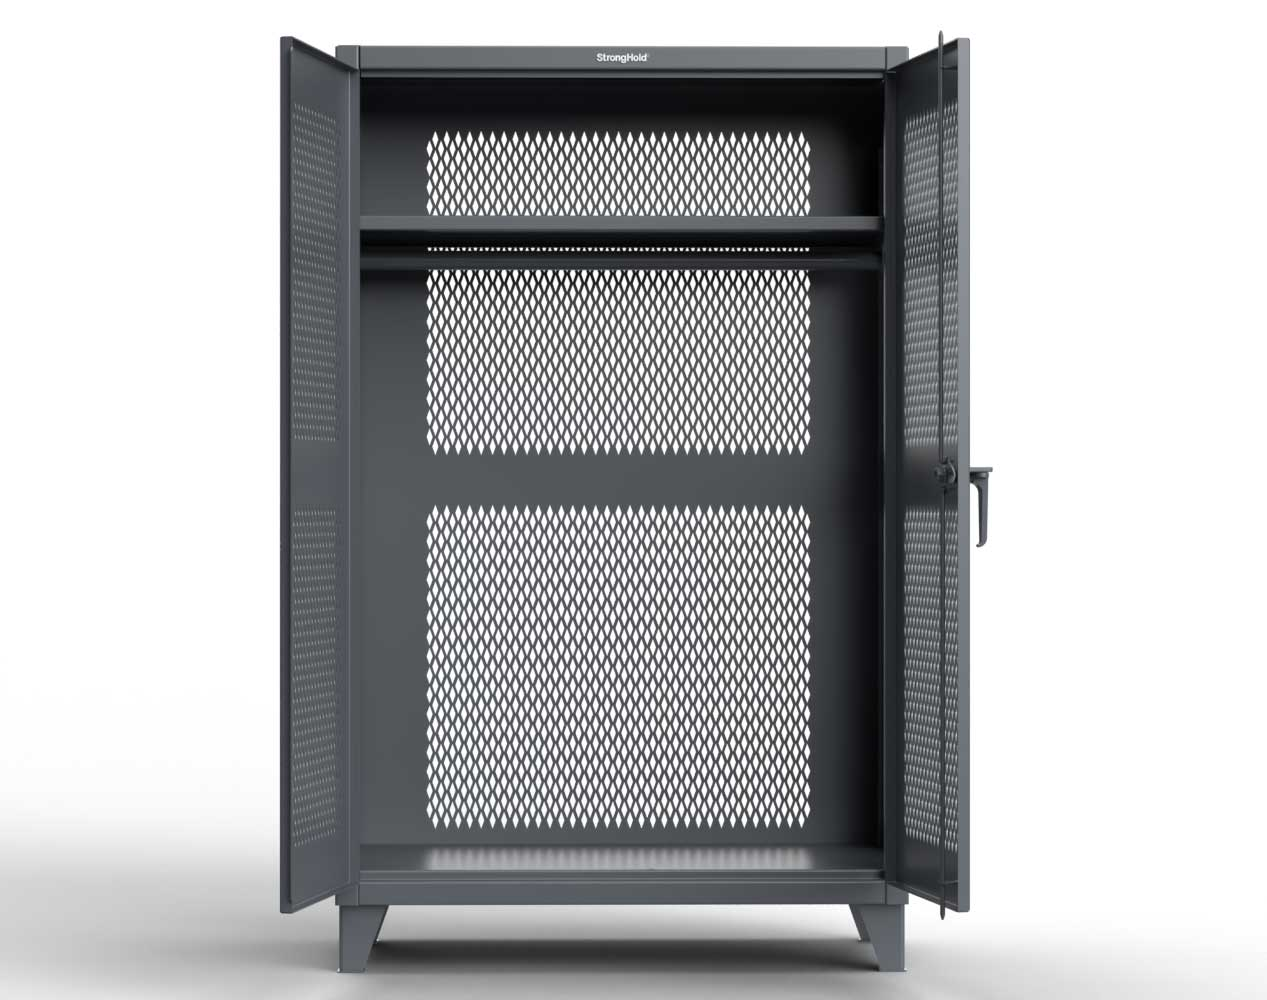 Extreme Duty 12 GA Fully-Ventilated Uniform Cabinet with Hanger Rod, 1 Shelf – 48 In. W x 24 In. D x 78 In. H